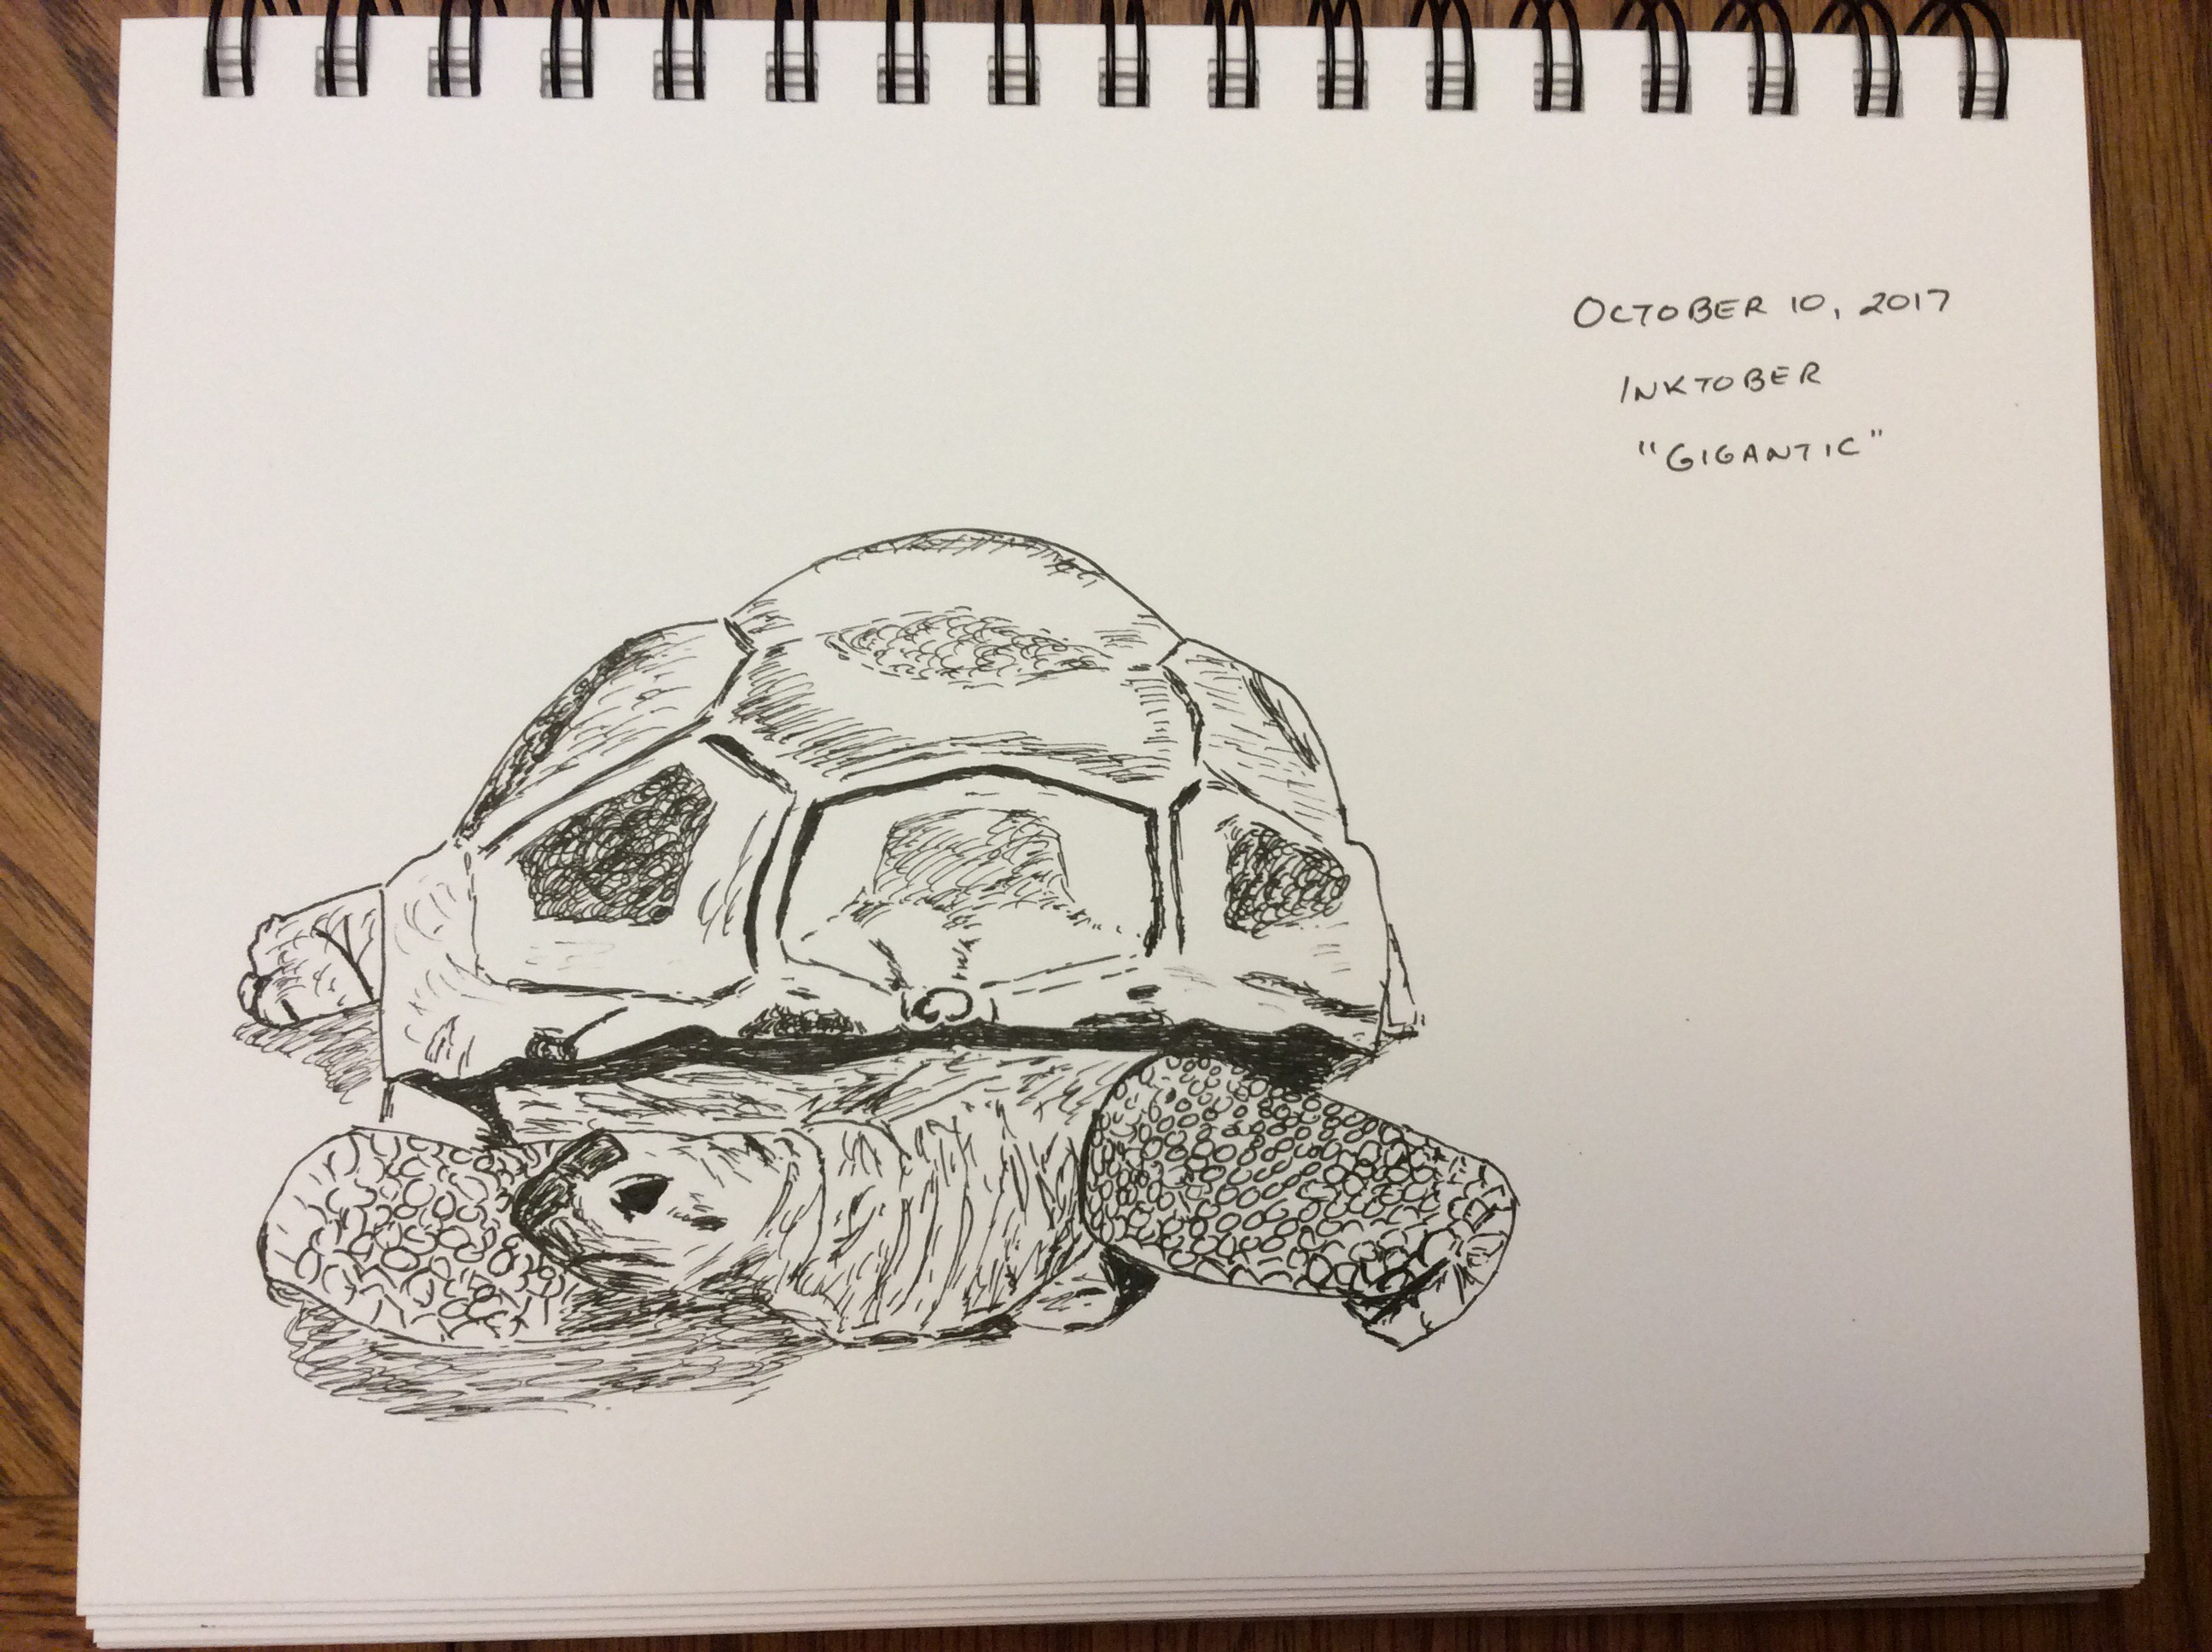 ink drawing of giant tortoise